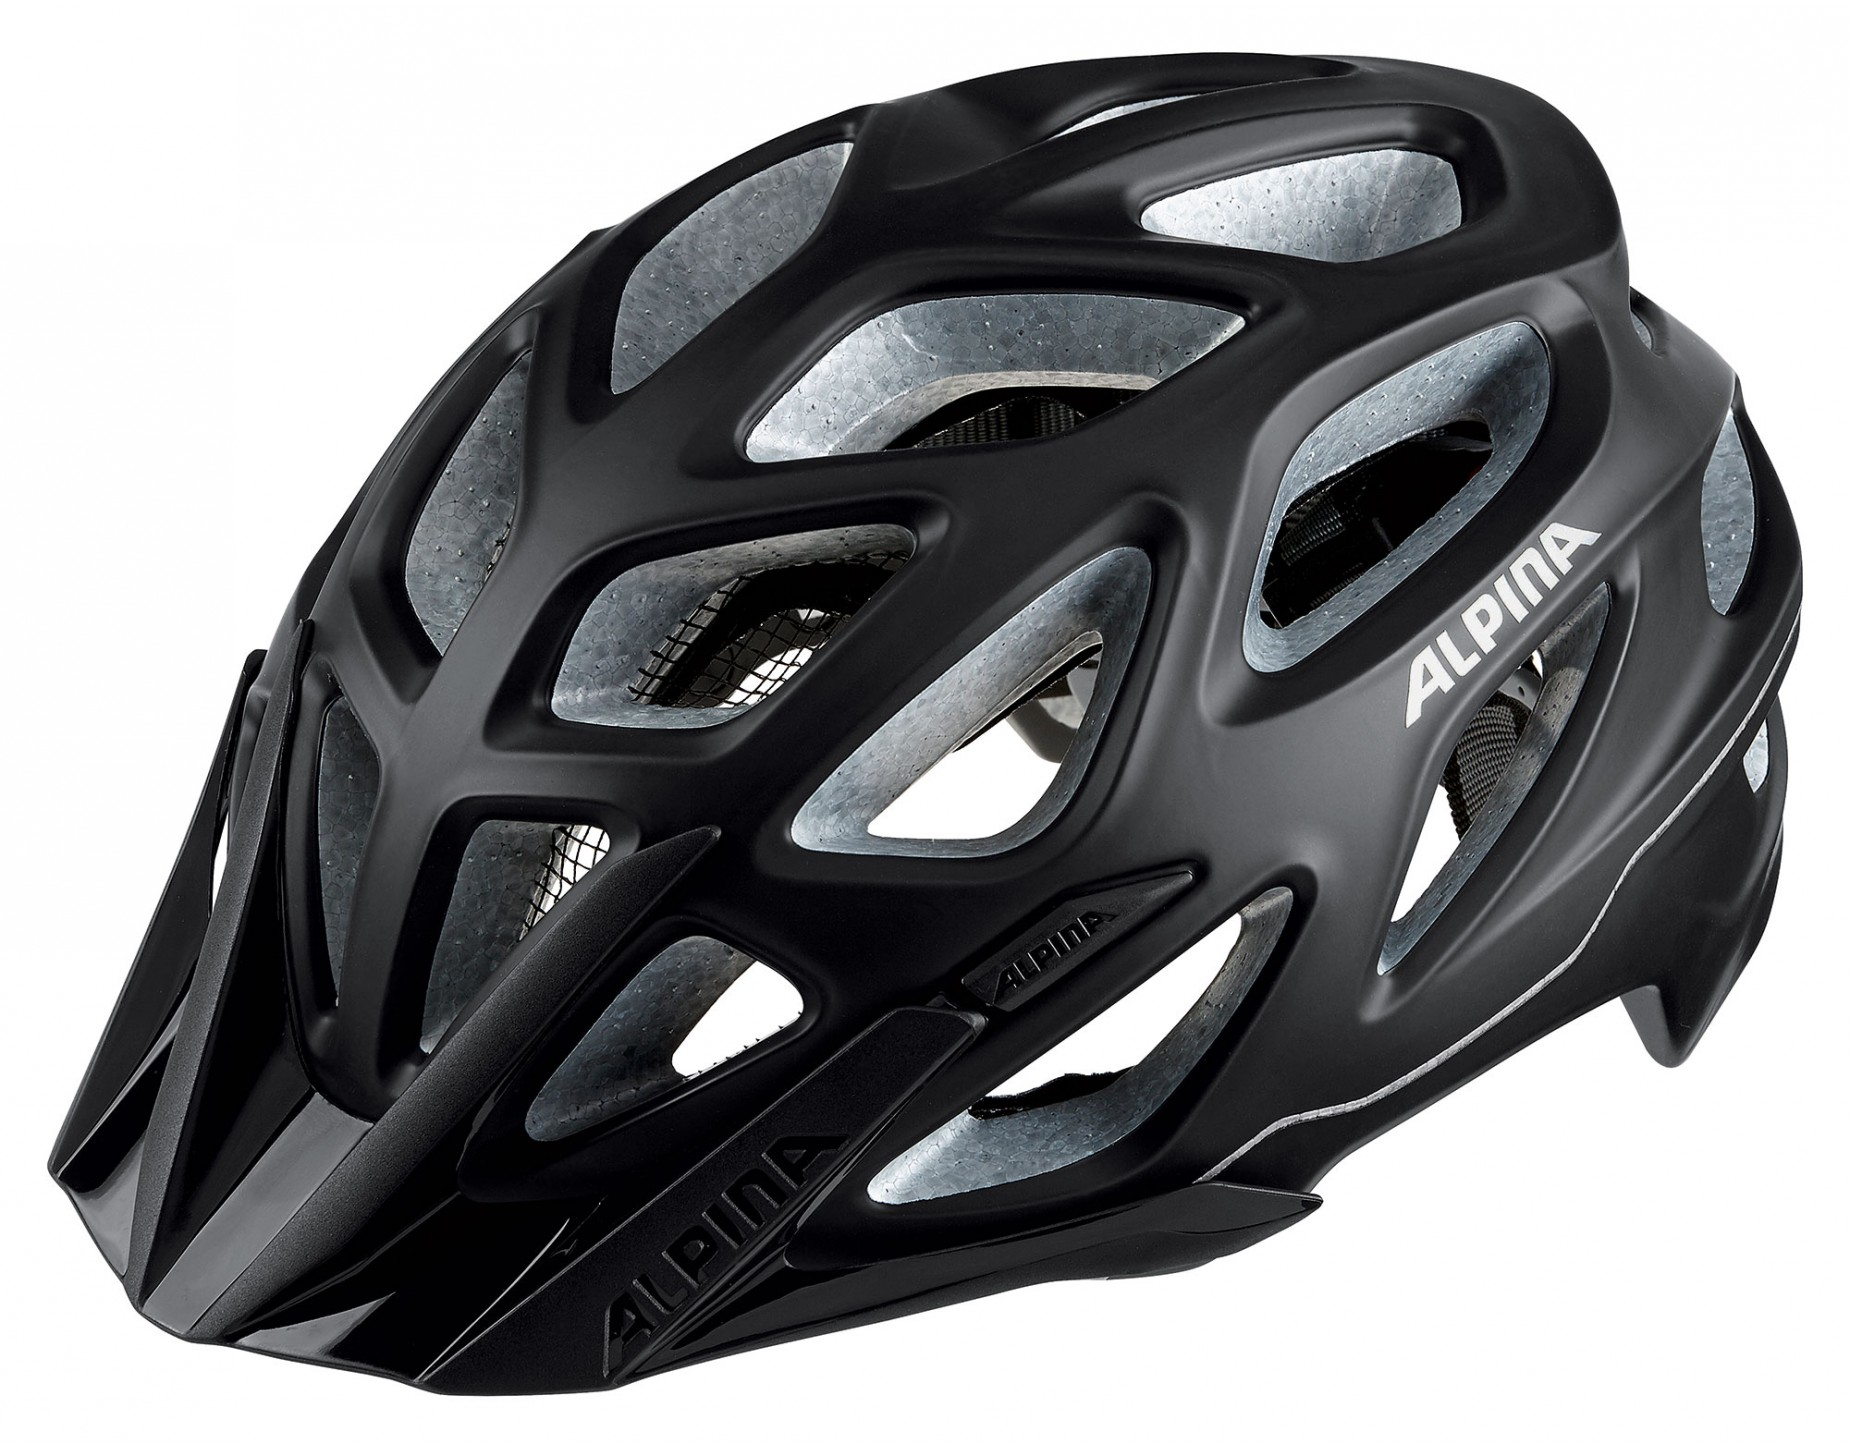 alpina mythos 3 0 le mtb helmet everything you need rose bikes. Black Bedroom Furniture Sets. Home Design Ideas